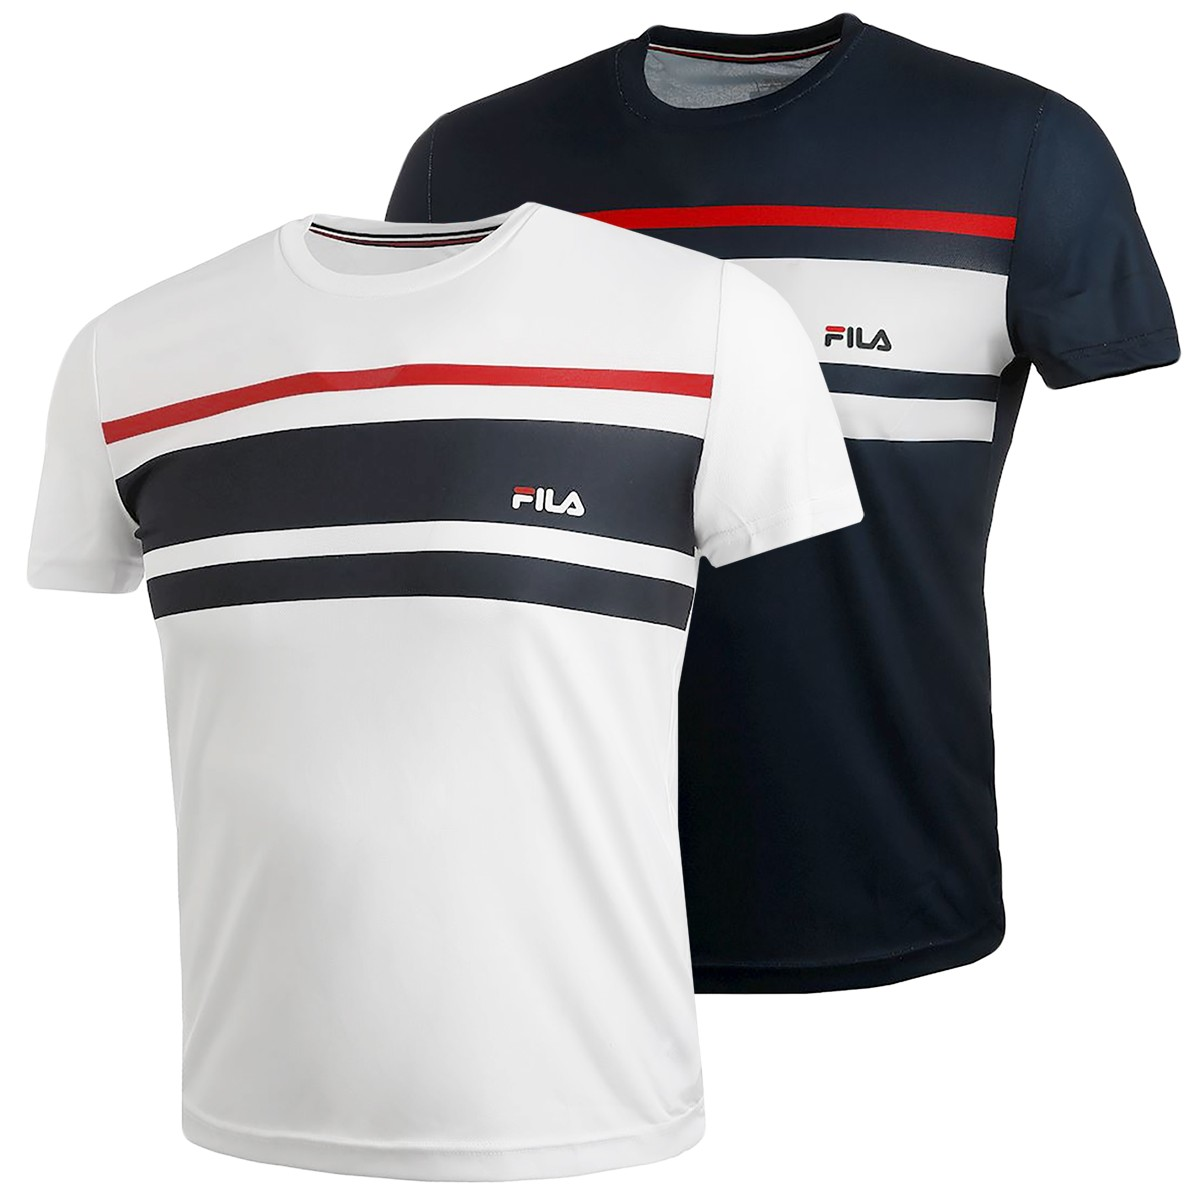 T-SHIRT FILA TREY